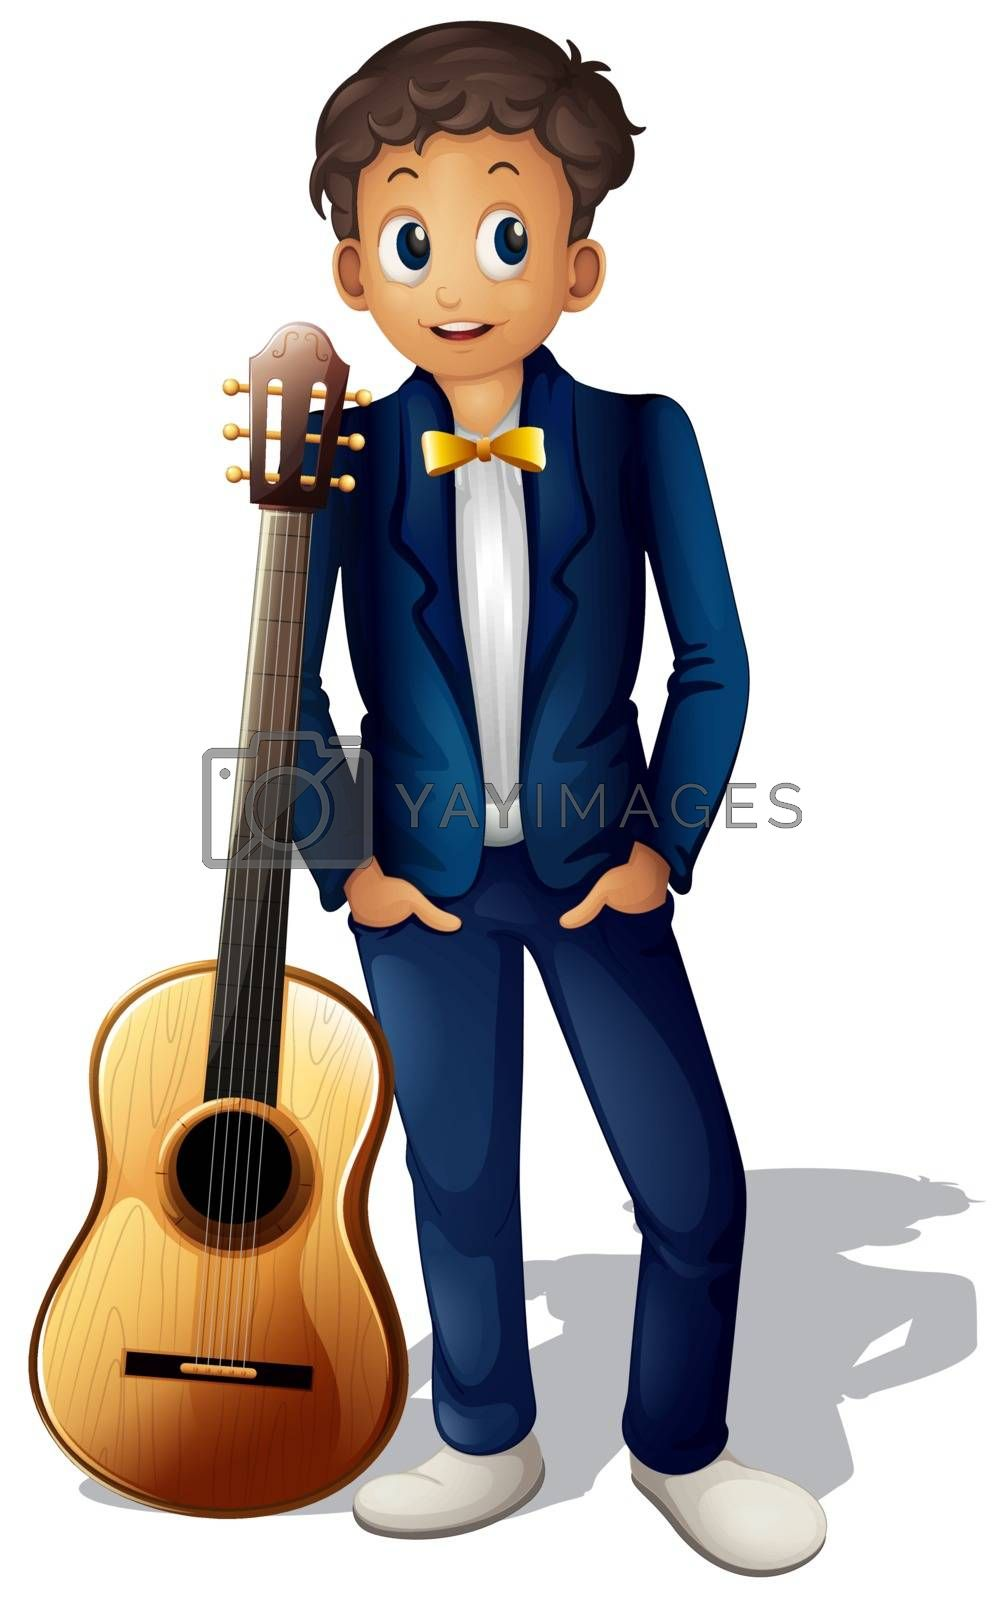 Illustration of a boy standing beside the guitar on a white background